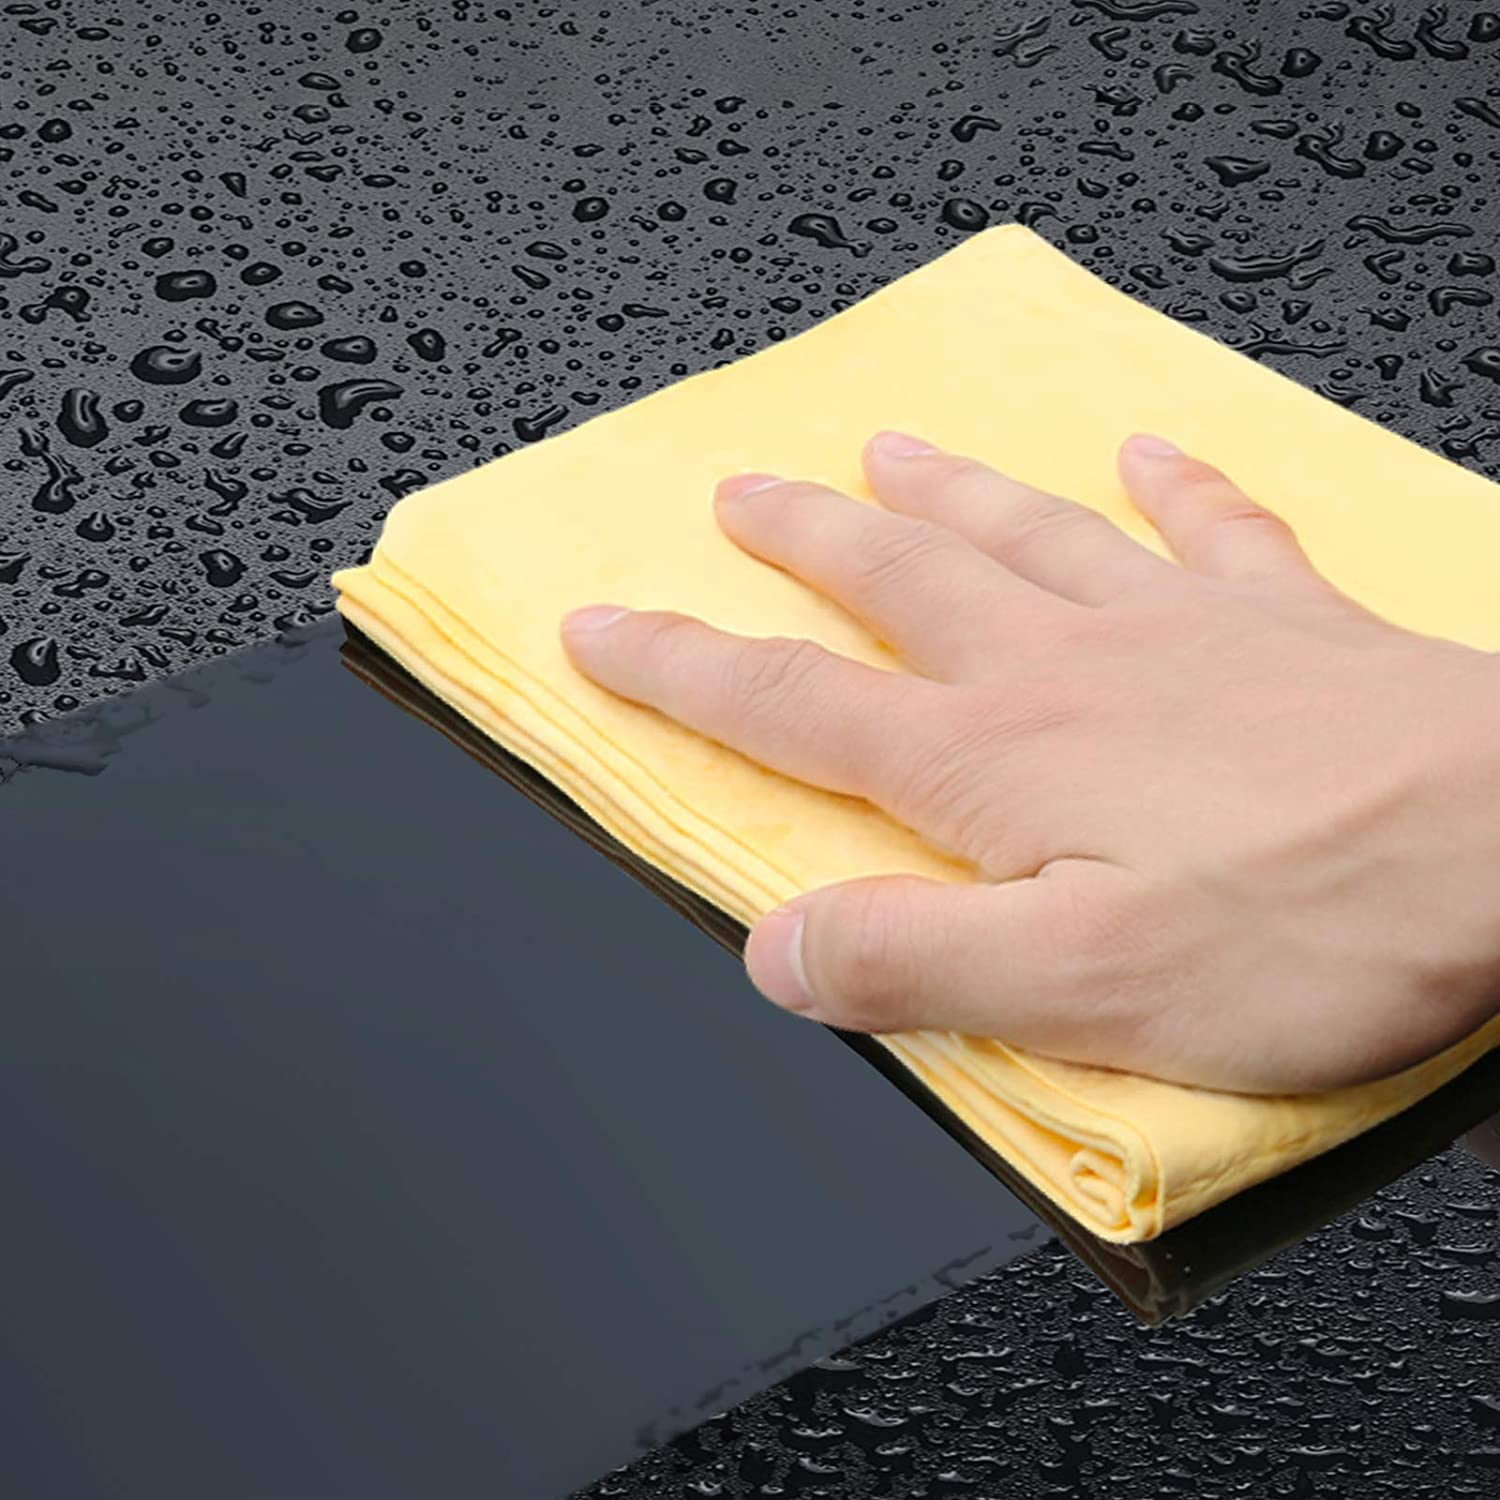 HOTOR Car Drying Towel for Car Wash 26 x 17 Durable and Multipurpose PVA Shammy Cloth for Car Dusting Drying and Detailing Super Absorbent Chamois Cloth for Car with Quick Dry Design